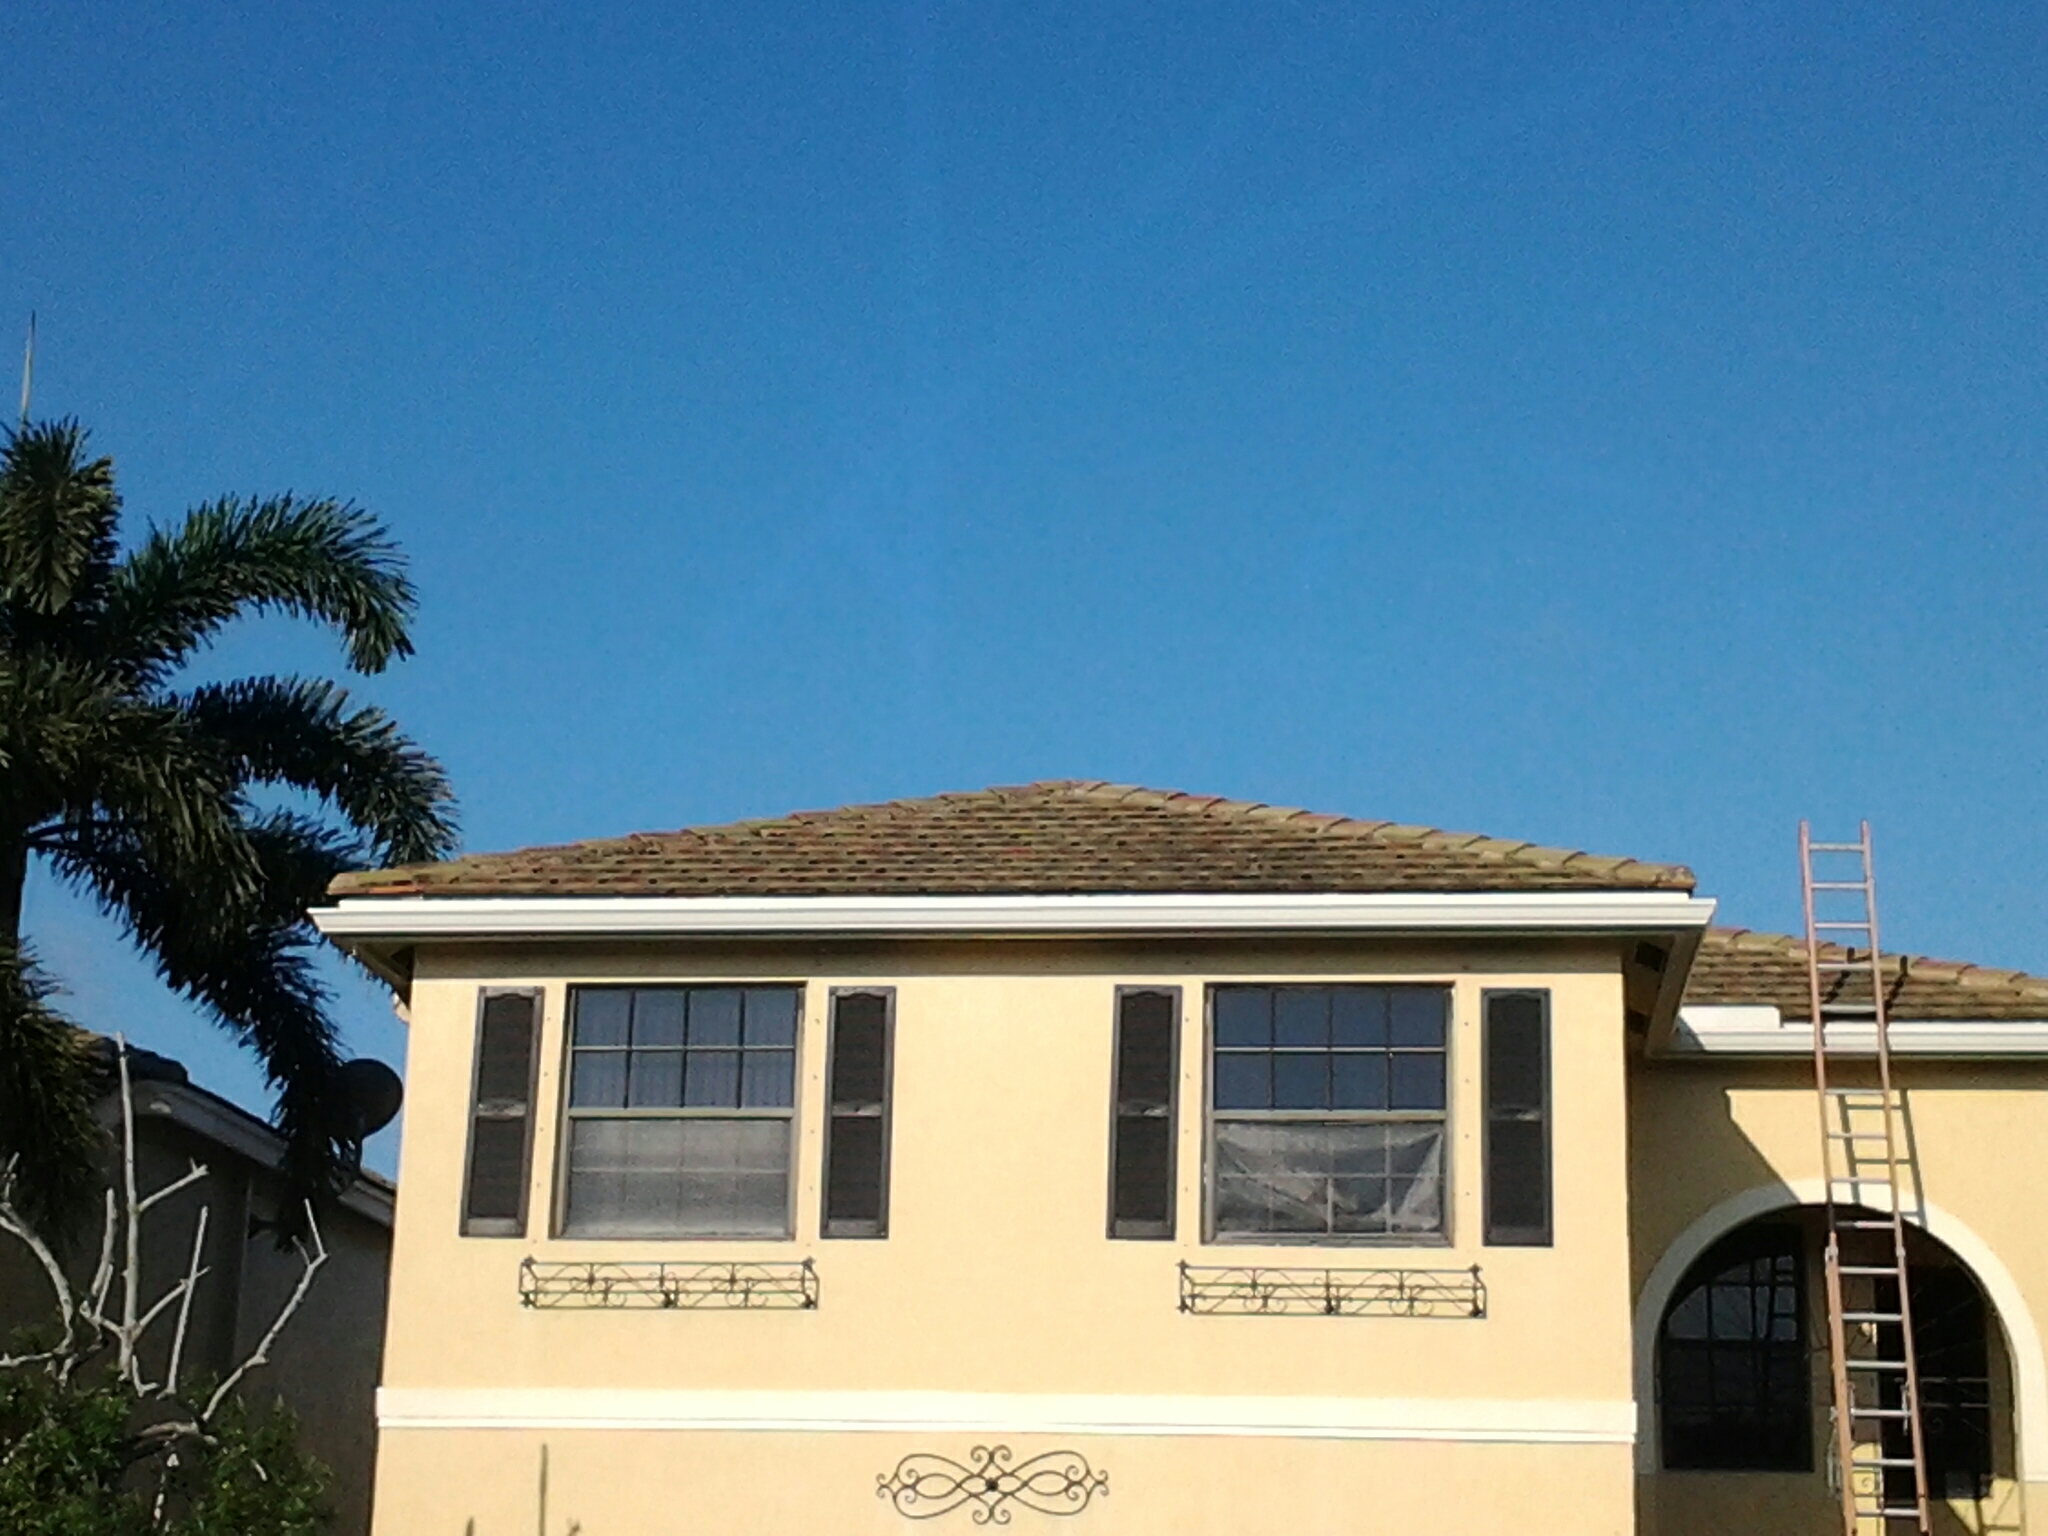 Coral Springs, FL - Pressure clean and roof a cide in Coral Springs by Duane & Gary from Earl W Johnston Roofing